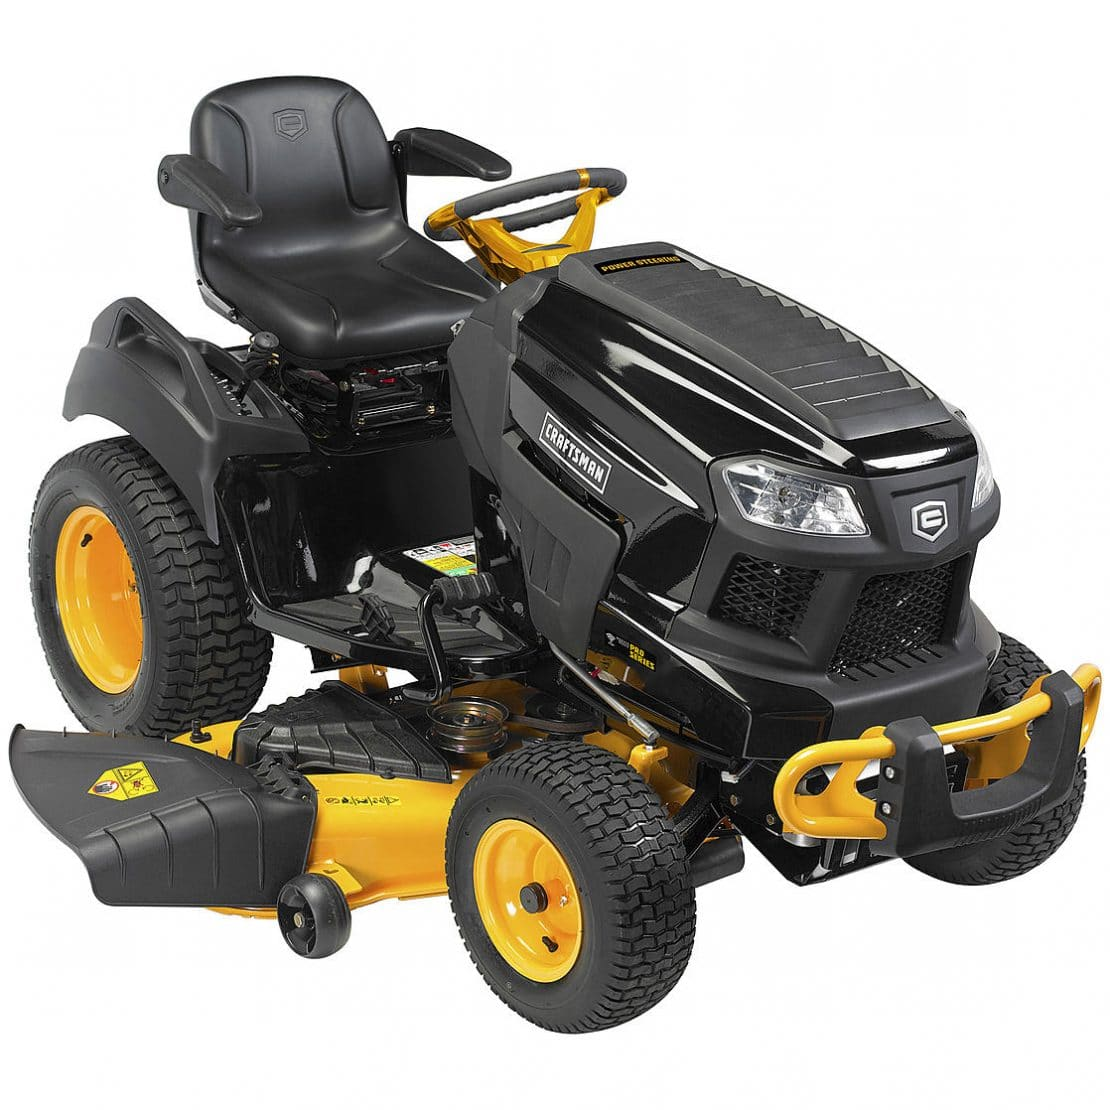 Best Craftsman Craftsman Pro Garden Tractors 2017 Buyers Guide